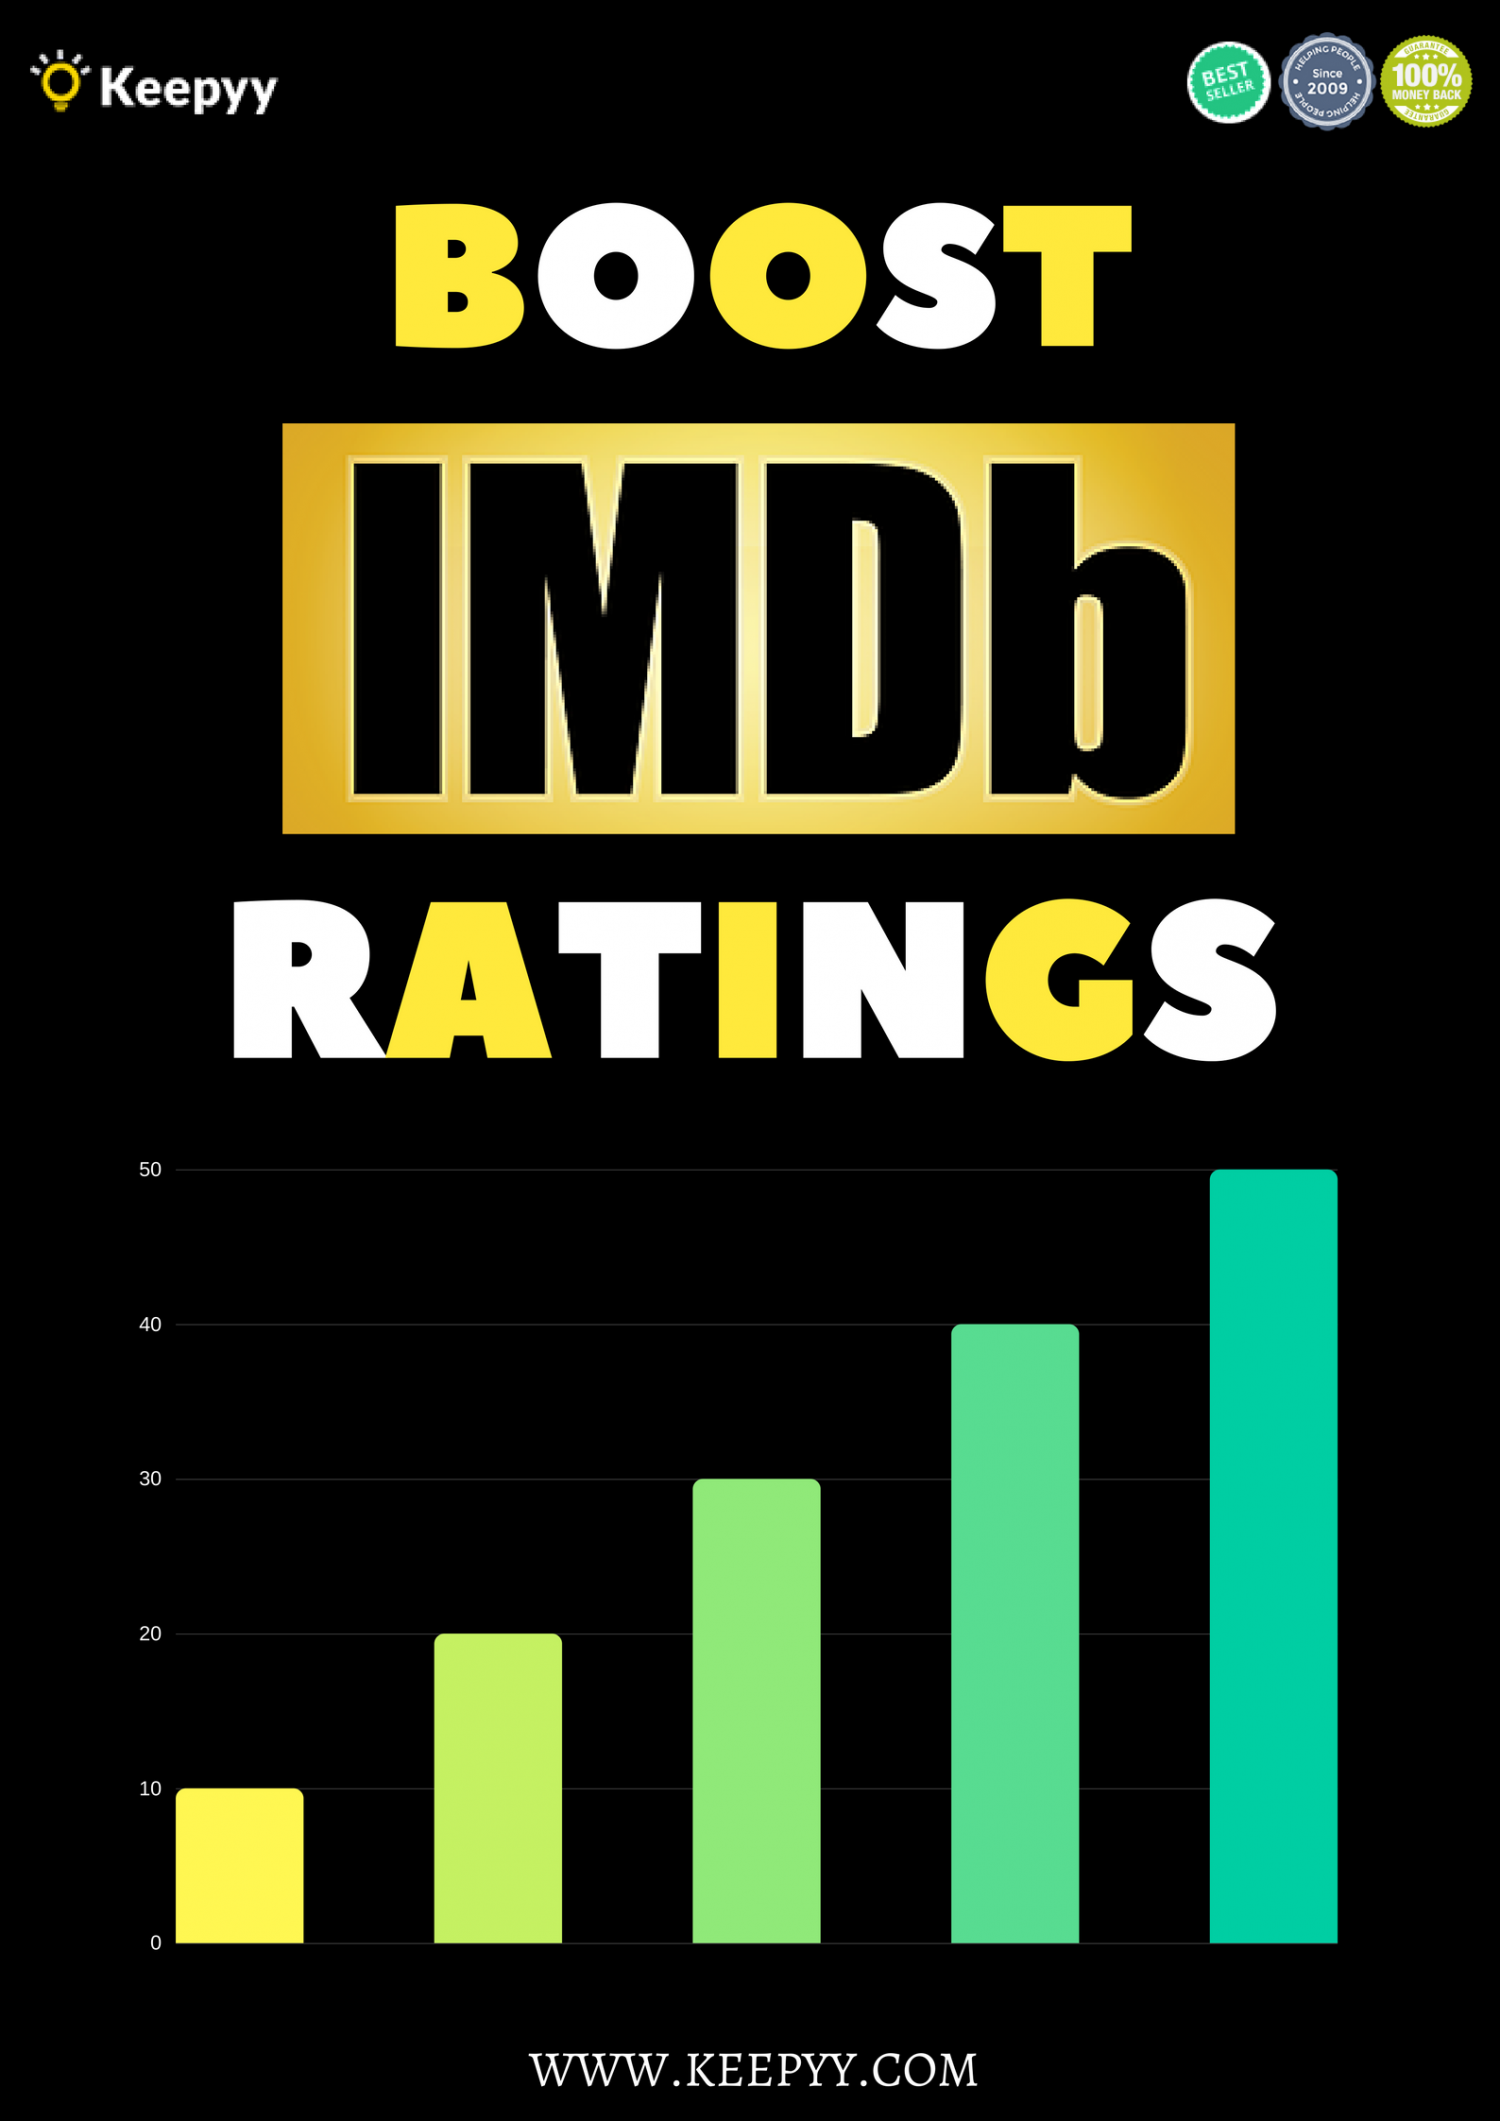 Boost IMDb Ratings Infographic